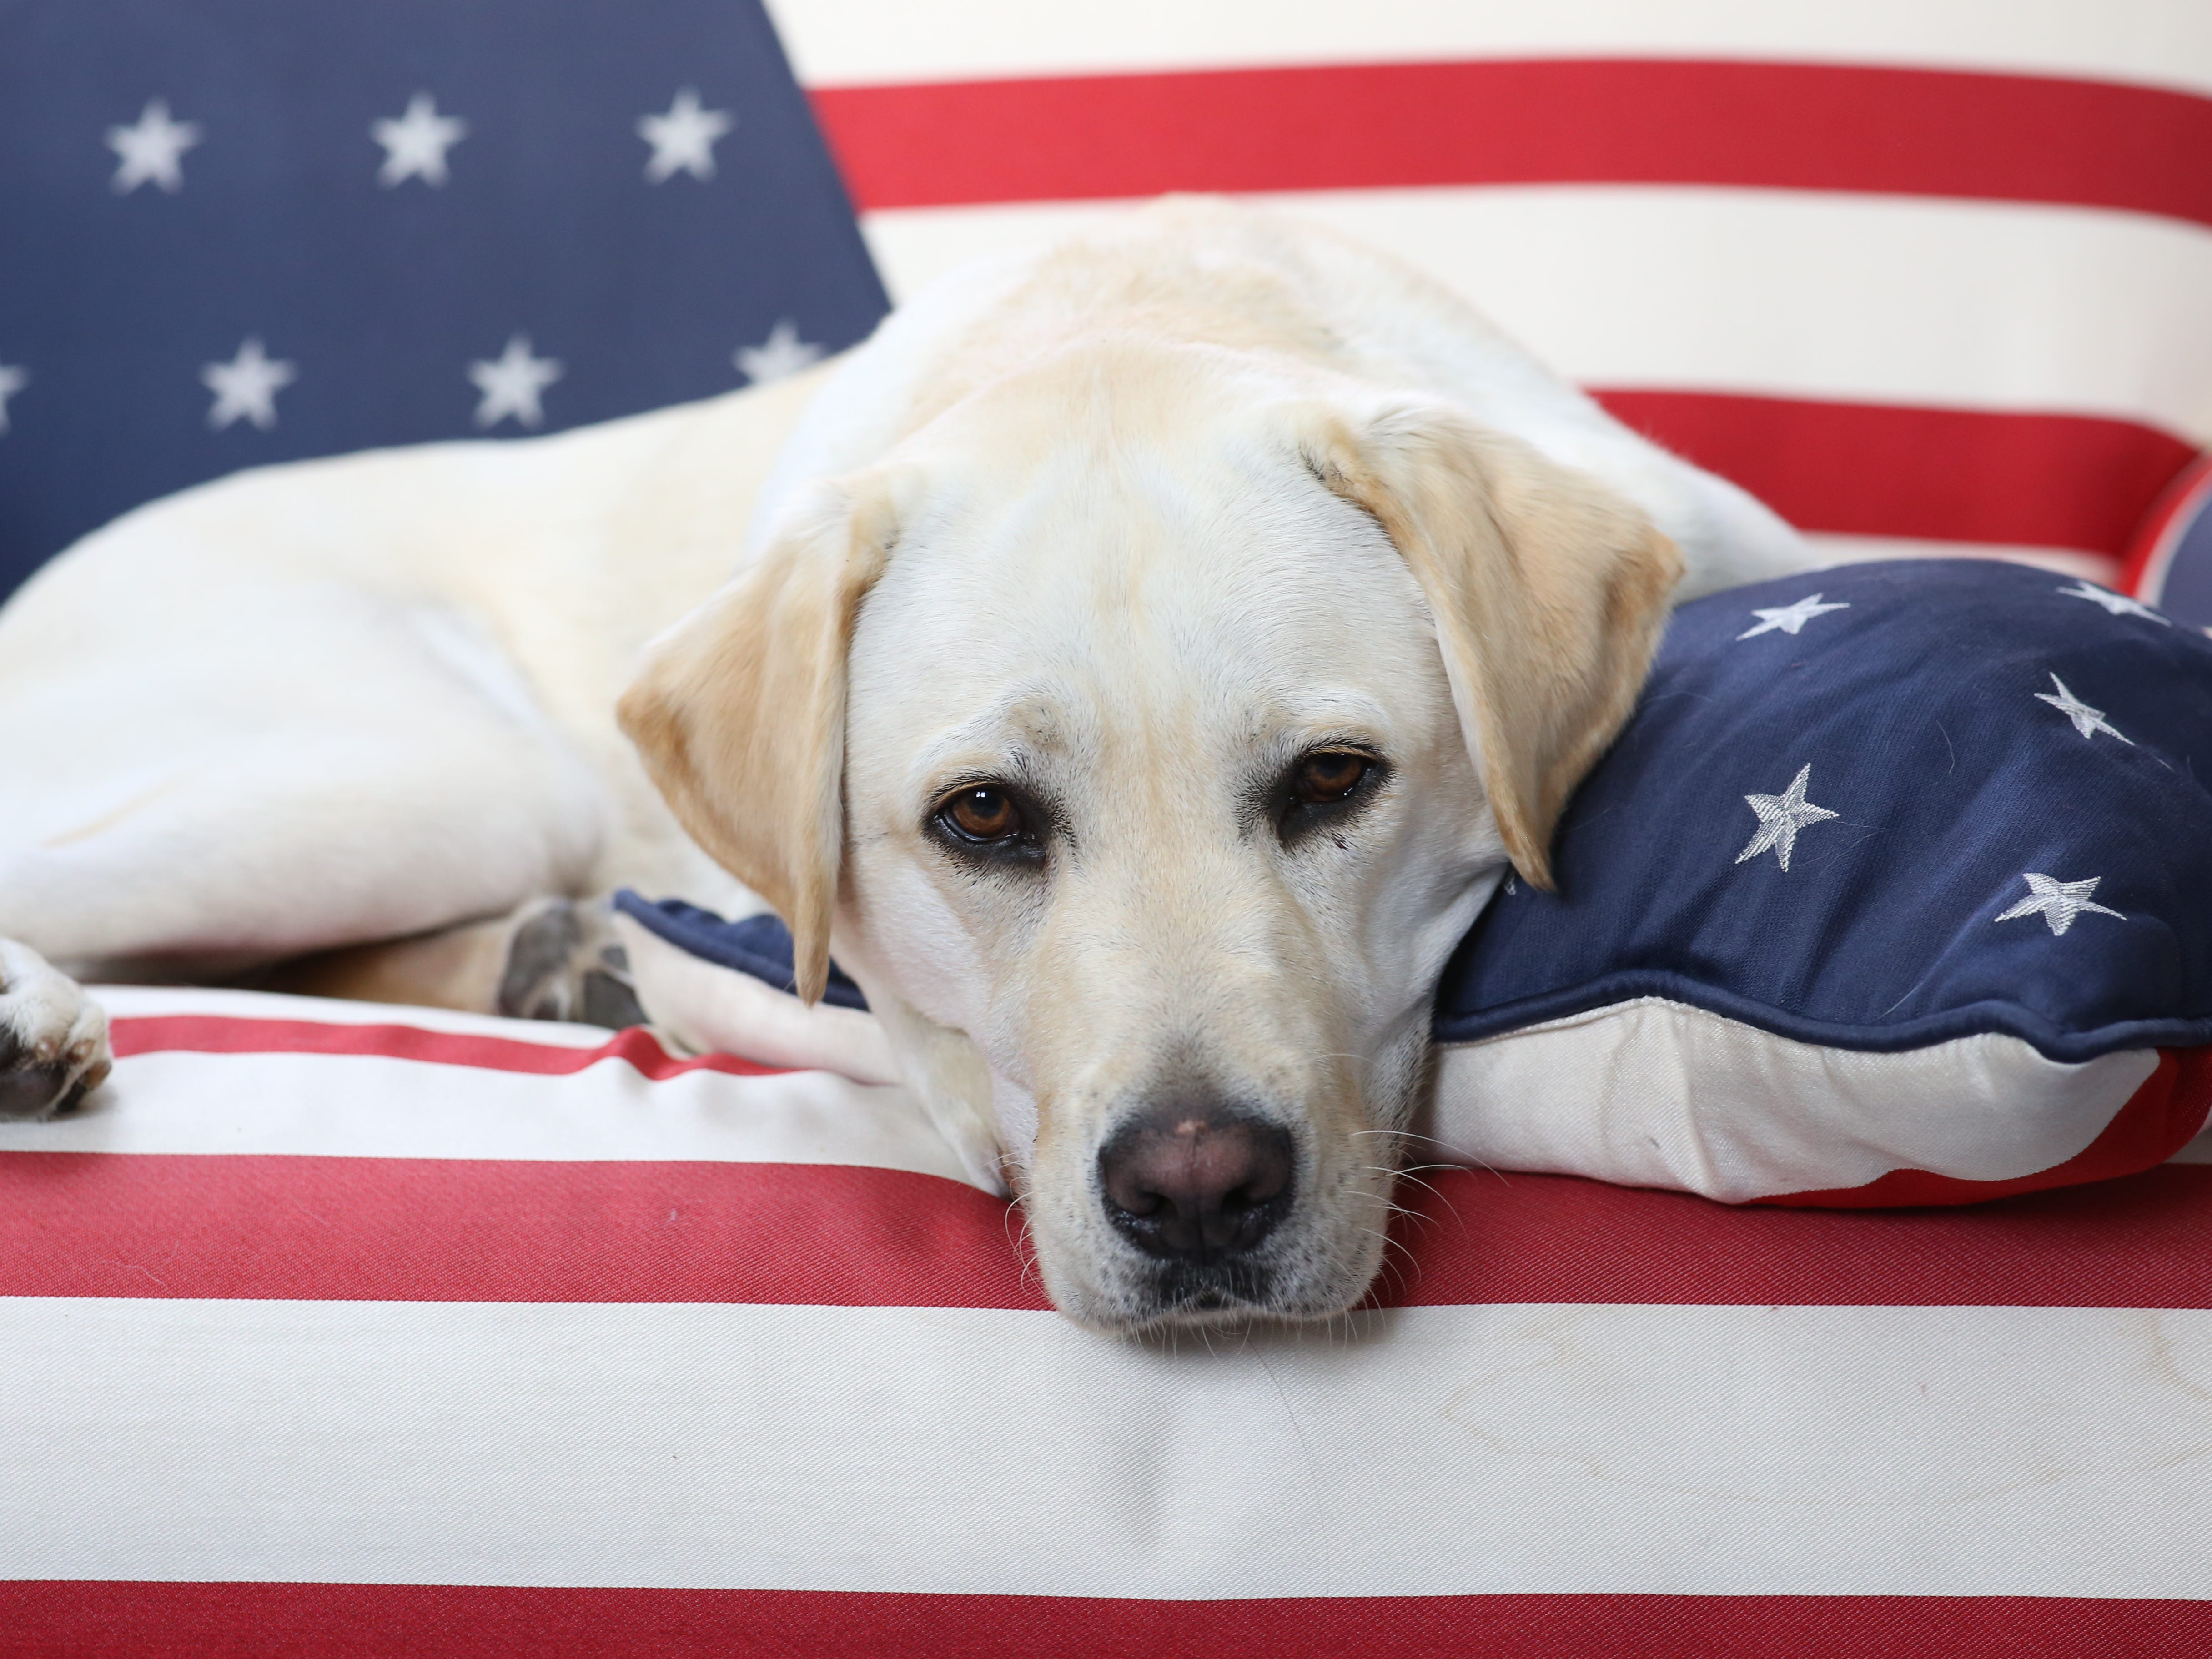 """Sully, the yellow Labrador retriever that's been seen resting loyally near former President George H.W. Bush's casket, has another mission ahead.Bush family spokesman Jim McGrath's shared a now viral photo of the dog after the 41st president's death, saying """"mission complete"""" on Sunday. The moving image won the hearts of dog lovers everywhere who expressed love for the pup and even defended the dog's relationship with Bush after Slate slammed the photo as not worth anyone's """"emotional energy."""""""